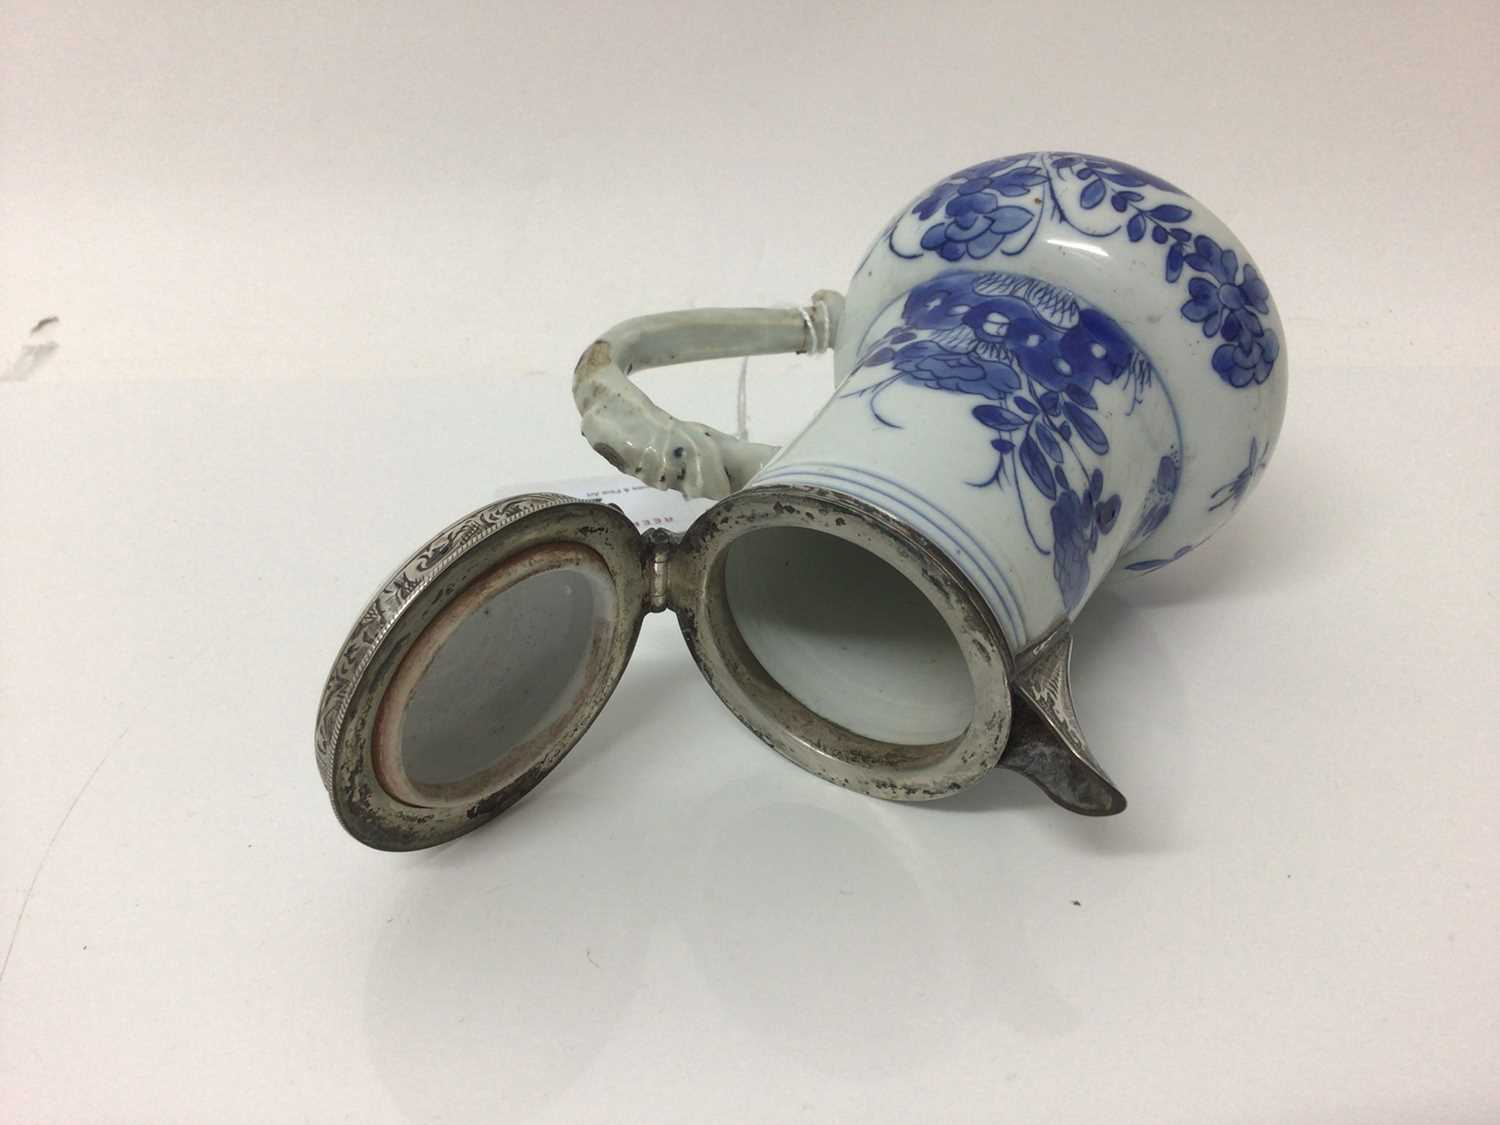 Chinese Kangxi porcelain jug and cover with later silver mount, together with a bowl (2) - Image 12 of 16